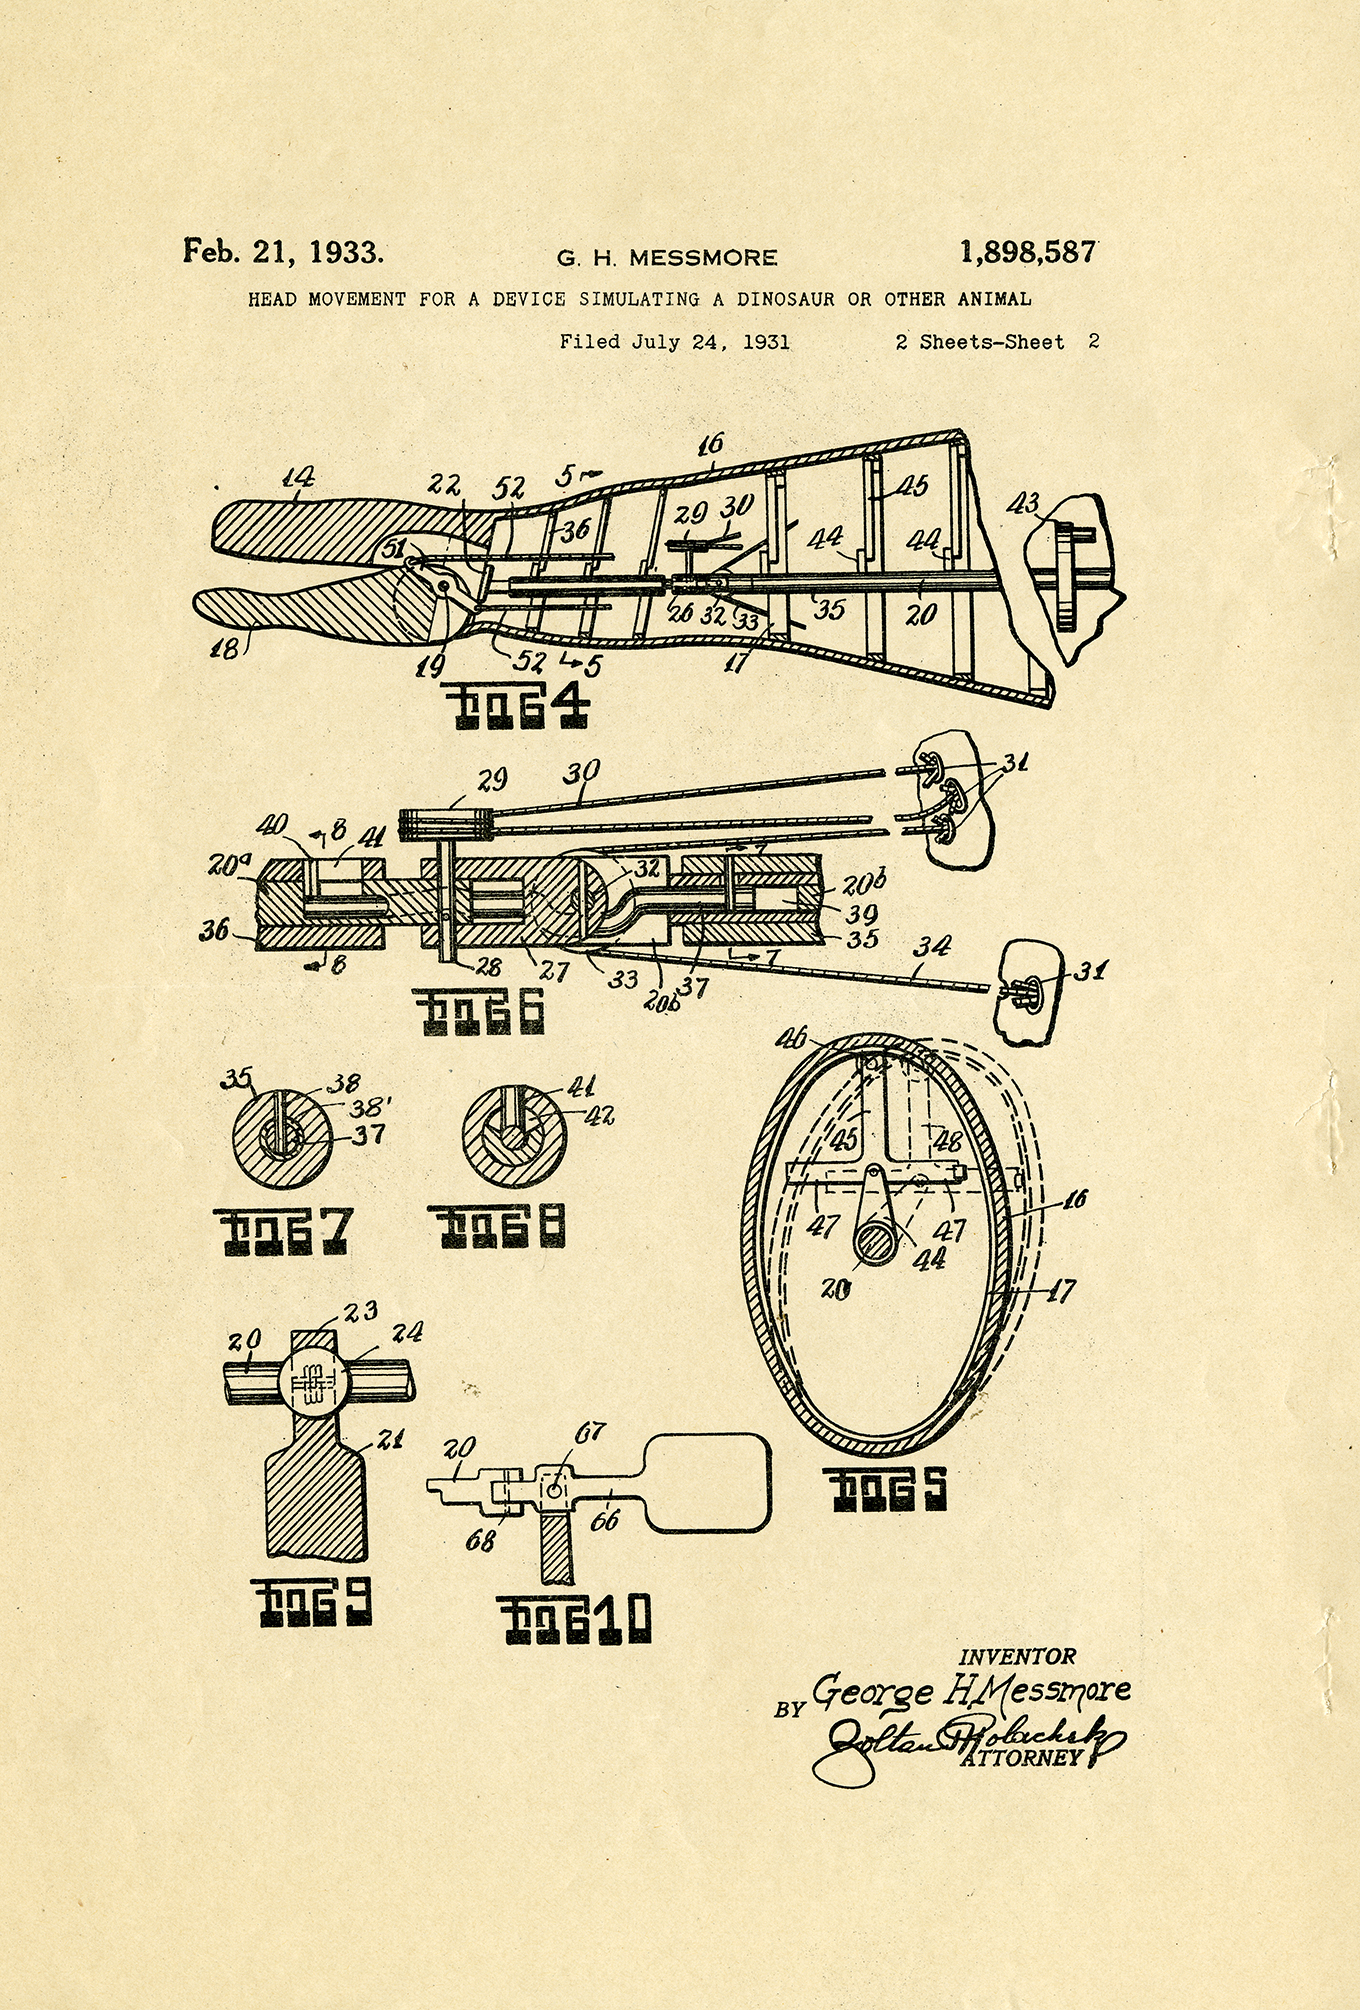 Drawing for US Patent 1,898,587, Head Movement for a Device Simulating a Dinosaur or Other Animal, 21 February 1933